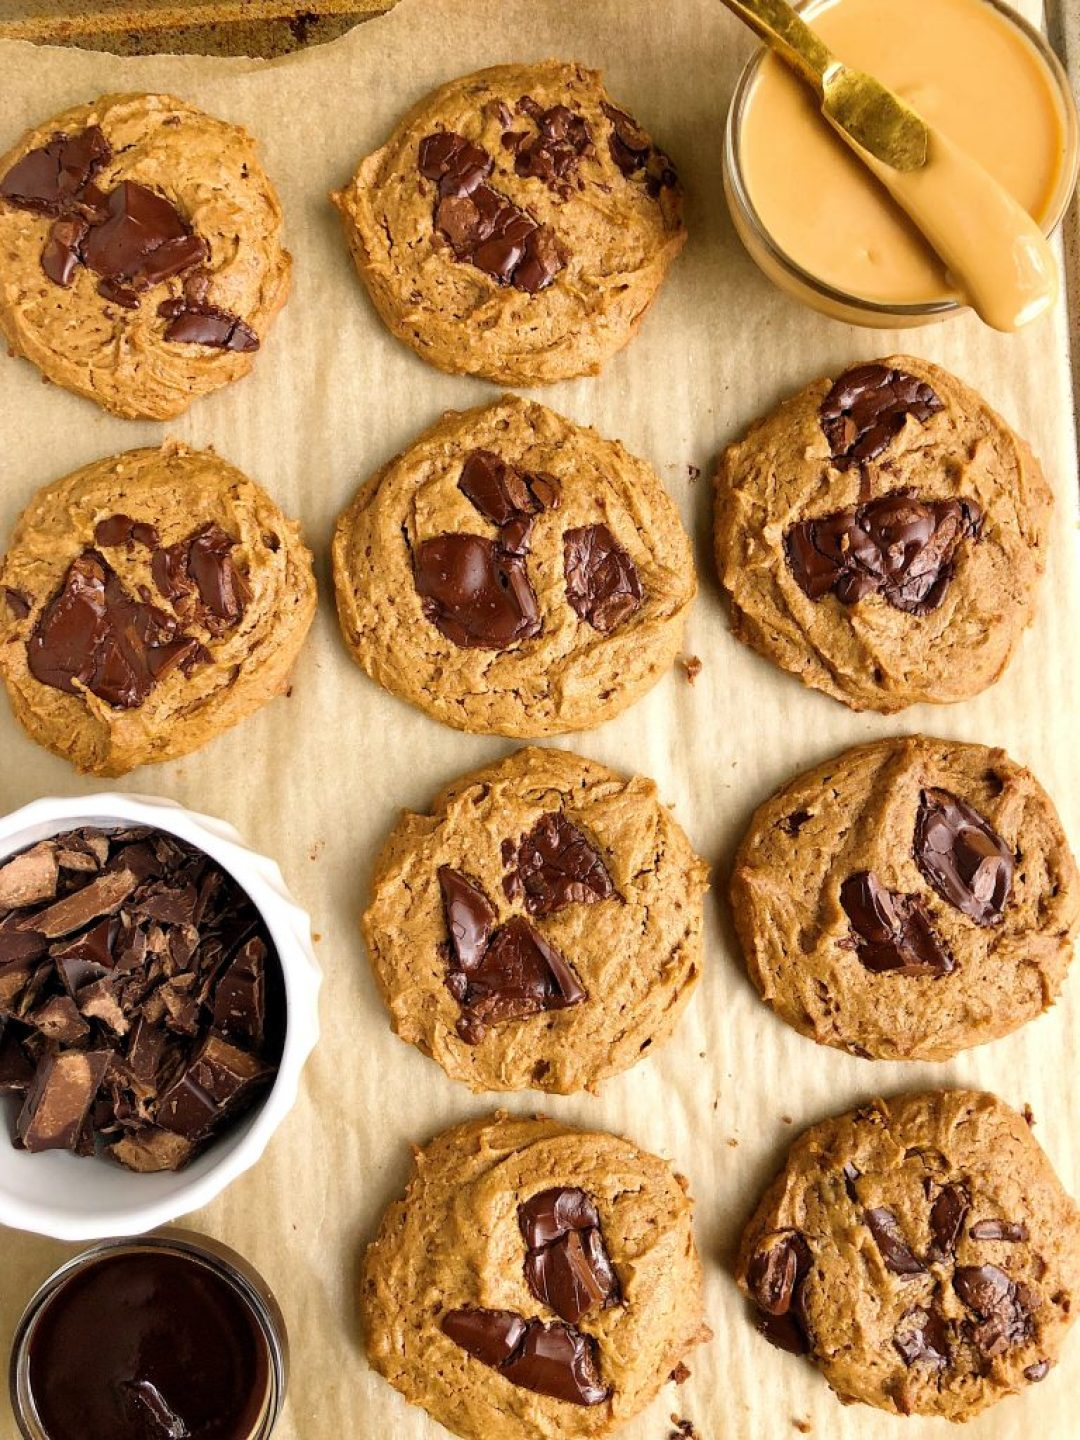 The Best Vegan Chocolate Chunk Sea Salt Peanut Butter Cookies made with gluten-free and plant-based ingredients for a simple and easy homemade cookie recipe ready in under 15 minutes!